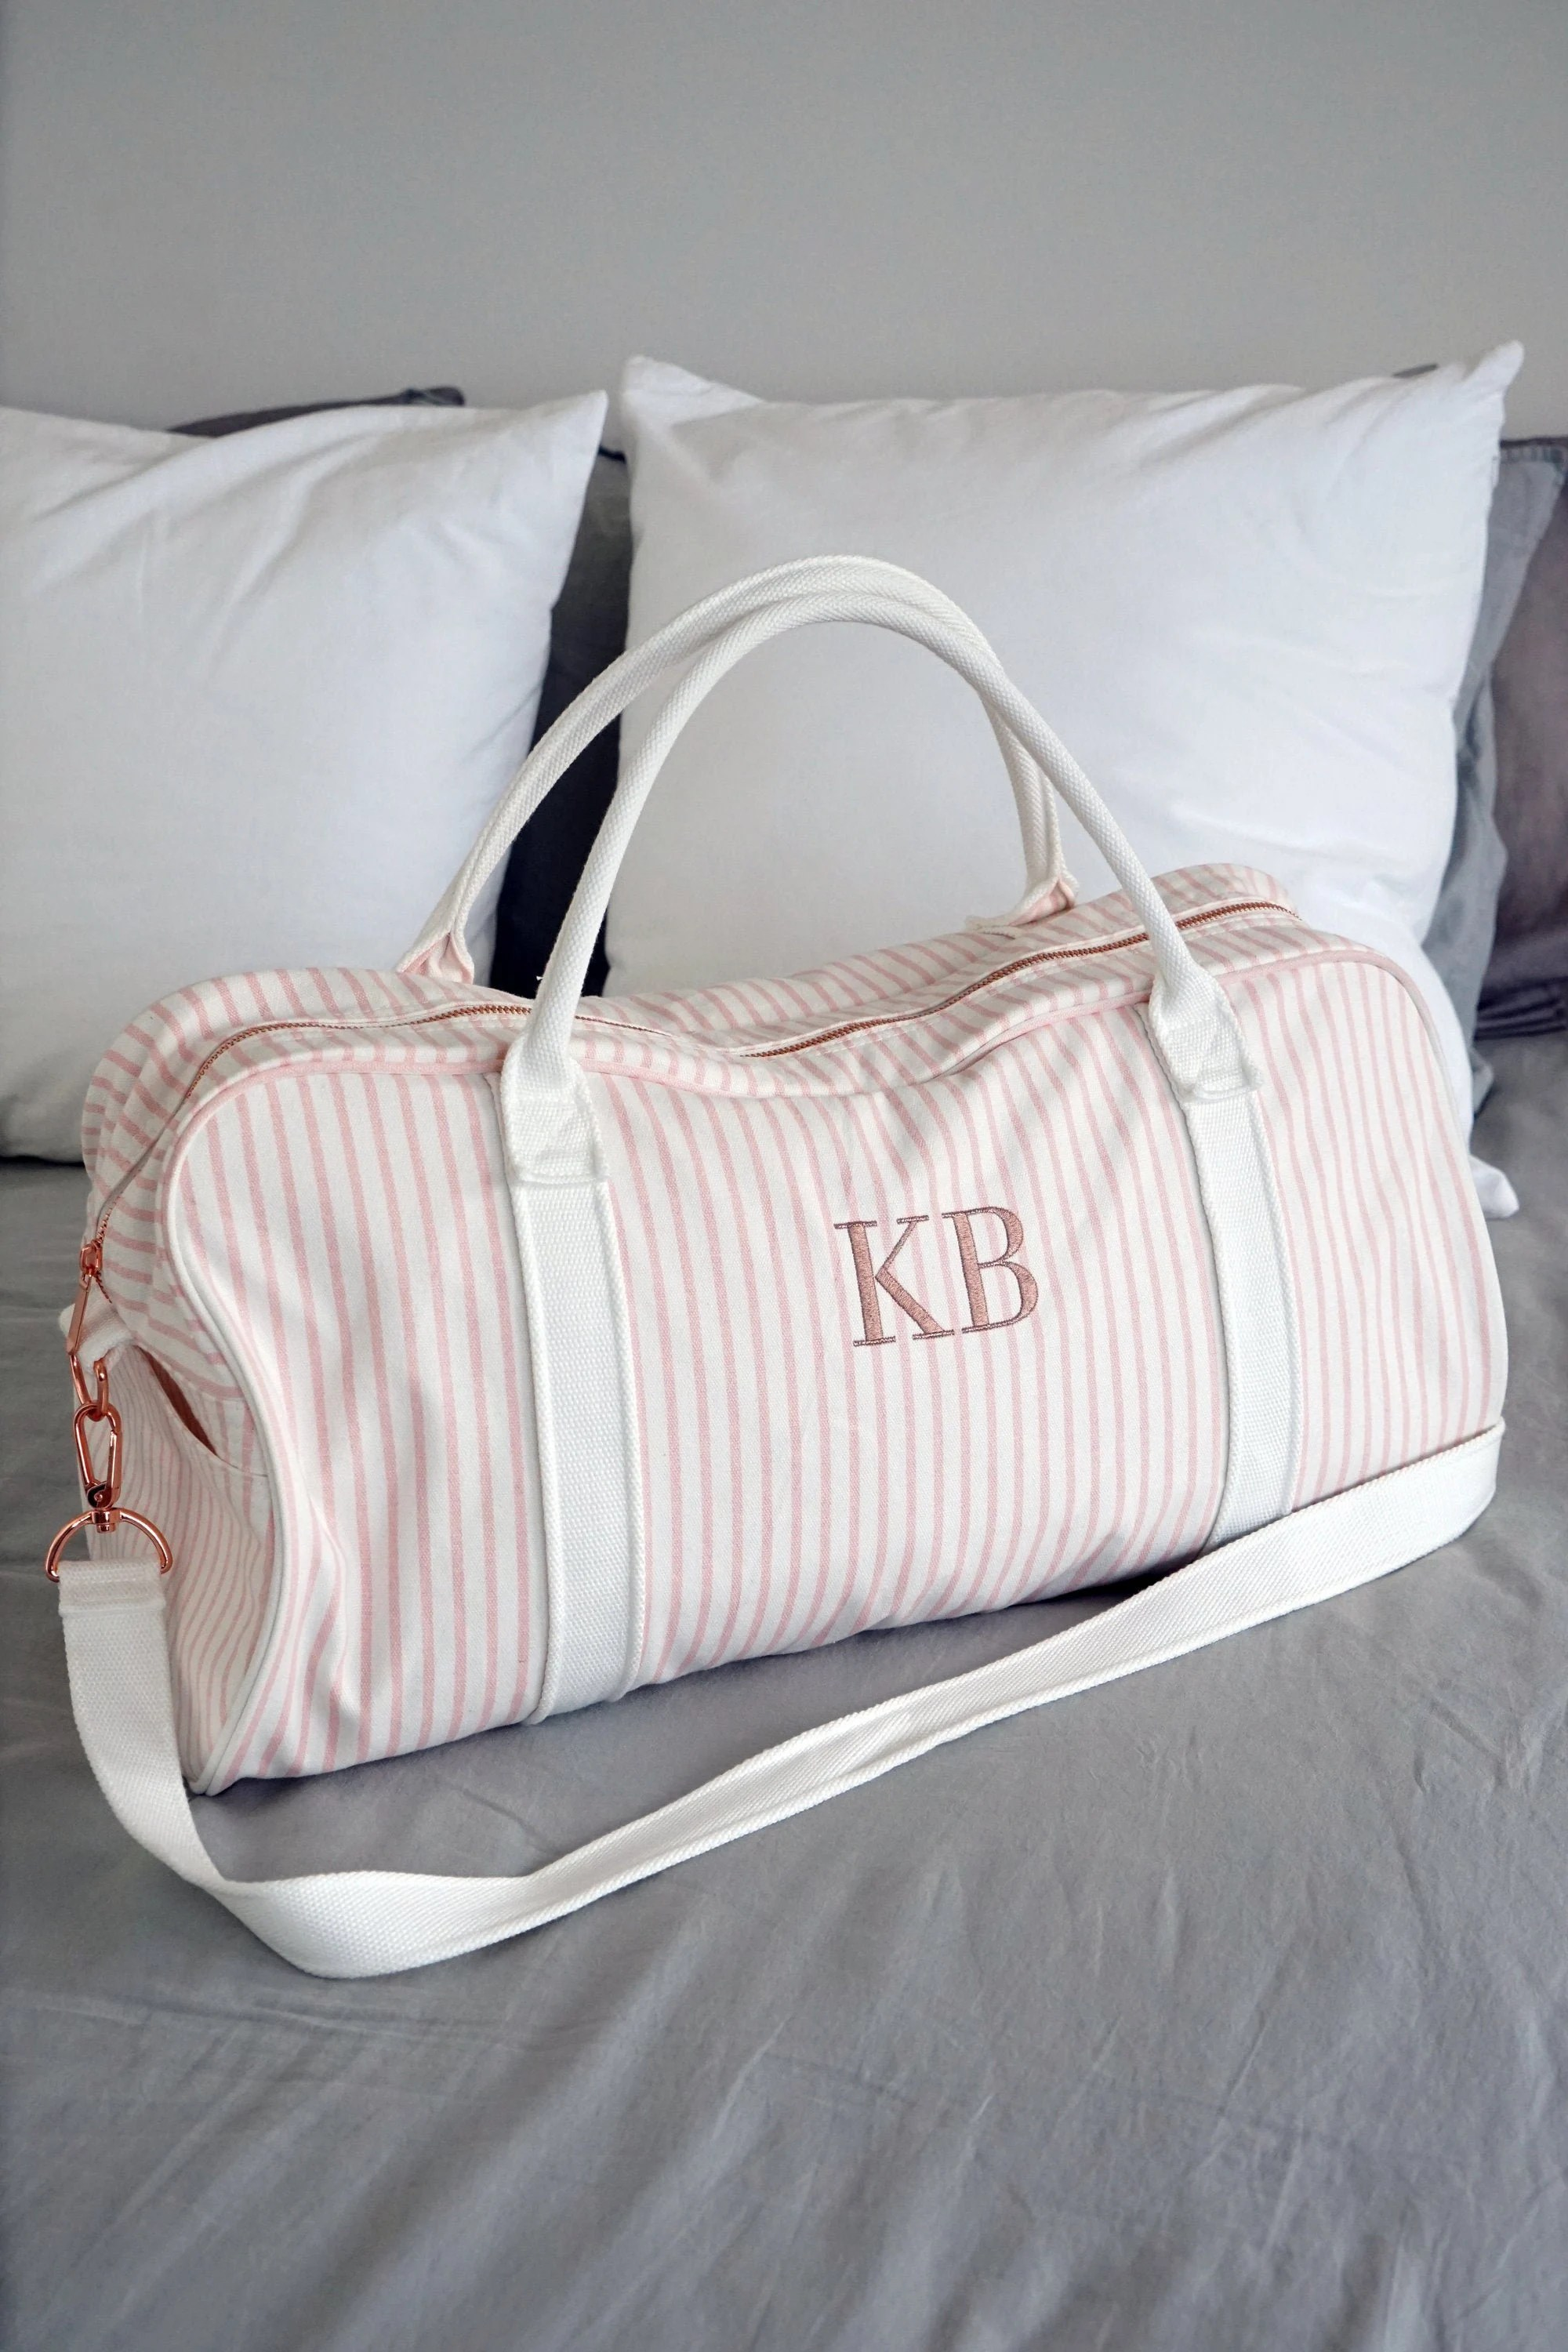 Personalised Bag //Duffle Bag //Bridesmaid Gifts //Monogrammed Blush Pink Stripe